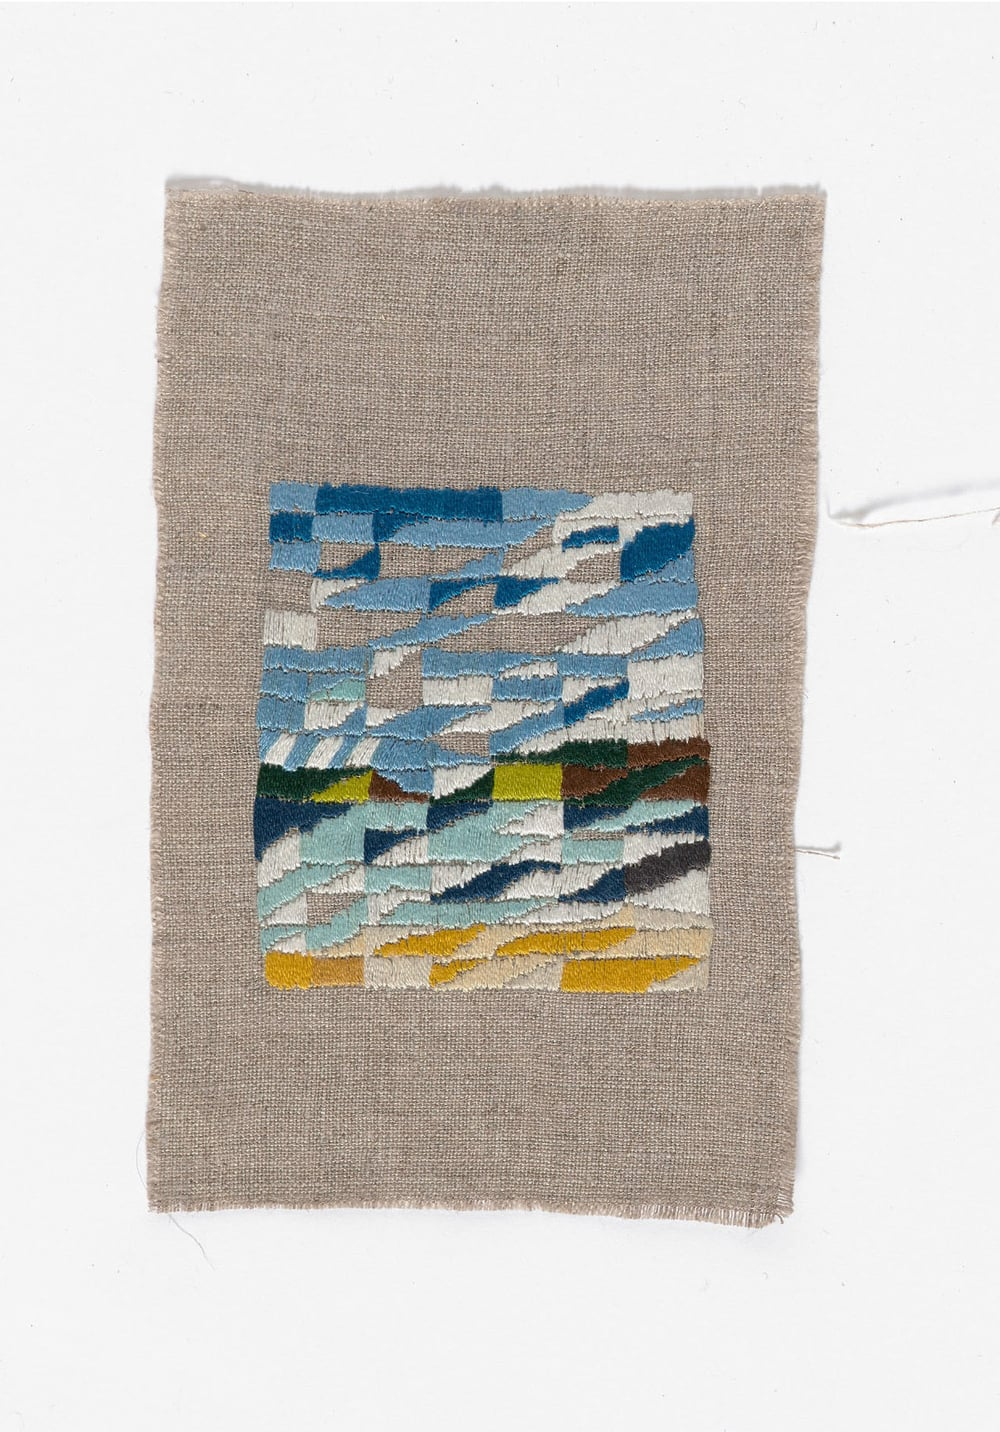 Silverleaves  2014 Cotton thread on linen 15 x 17.5cm